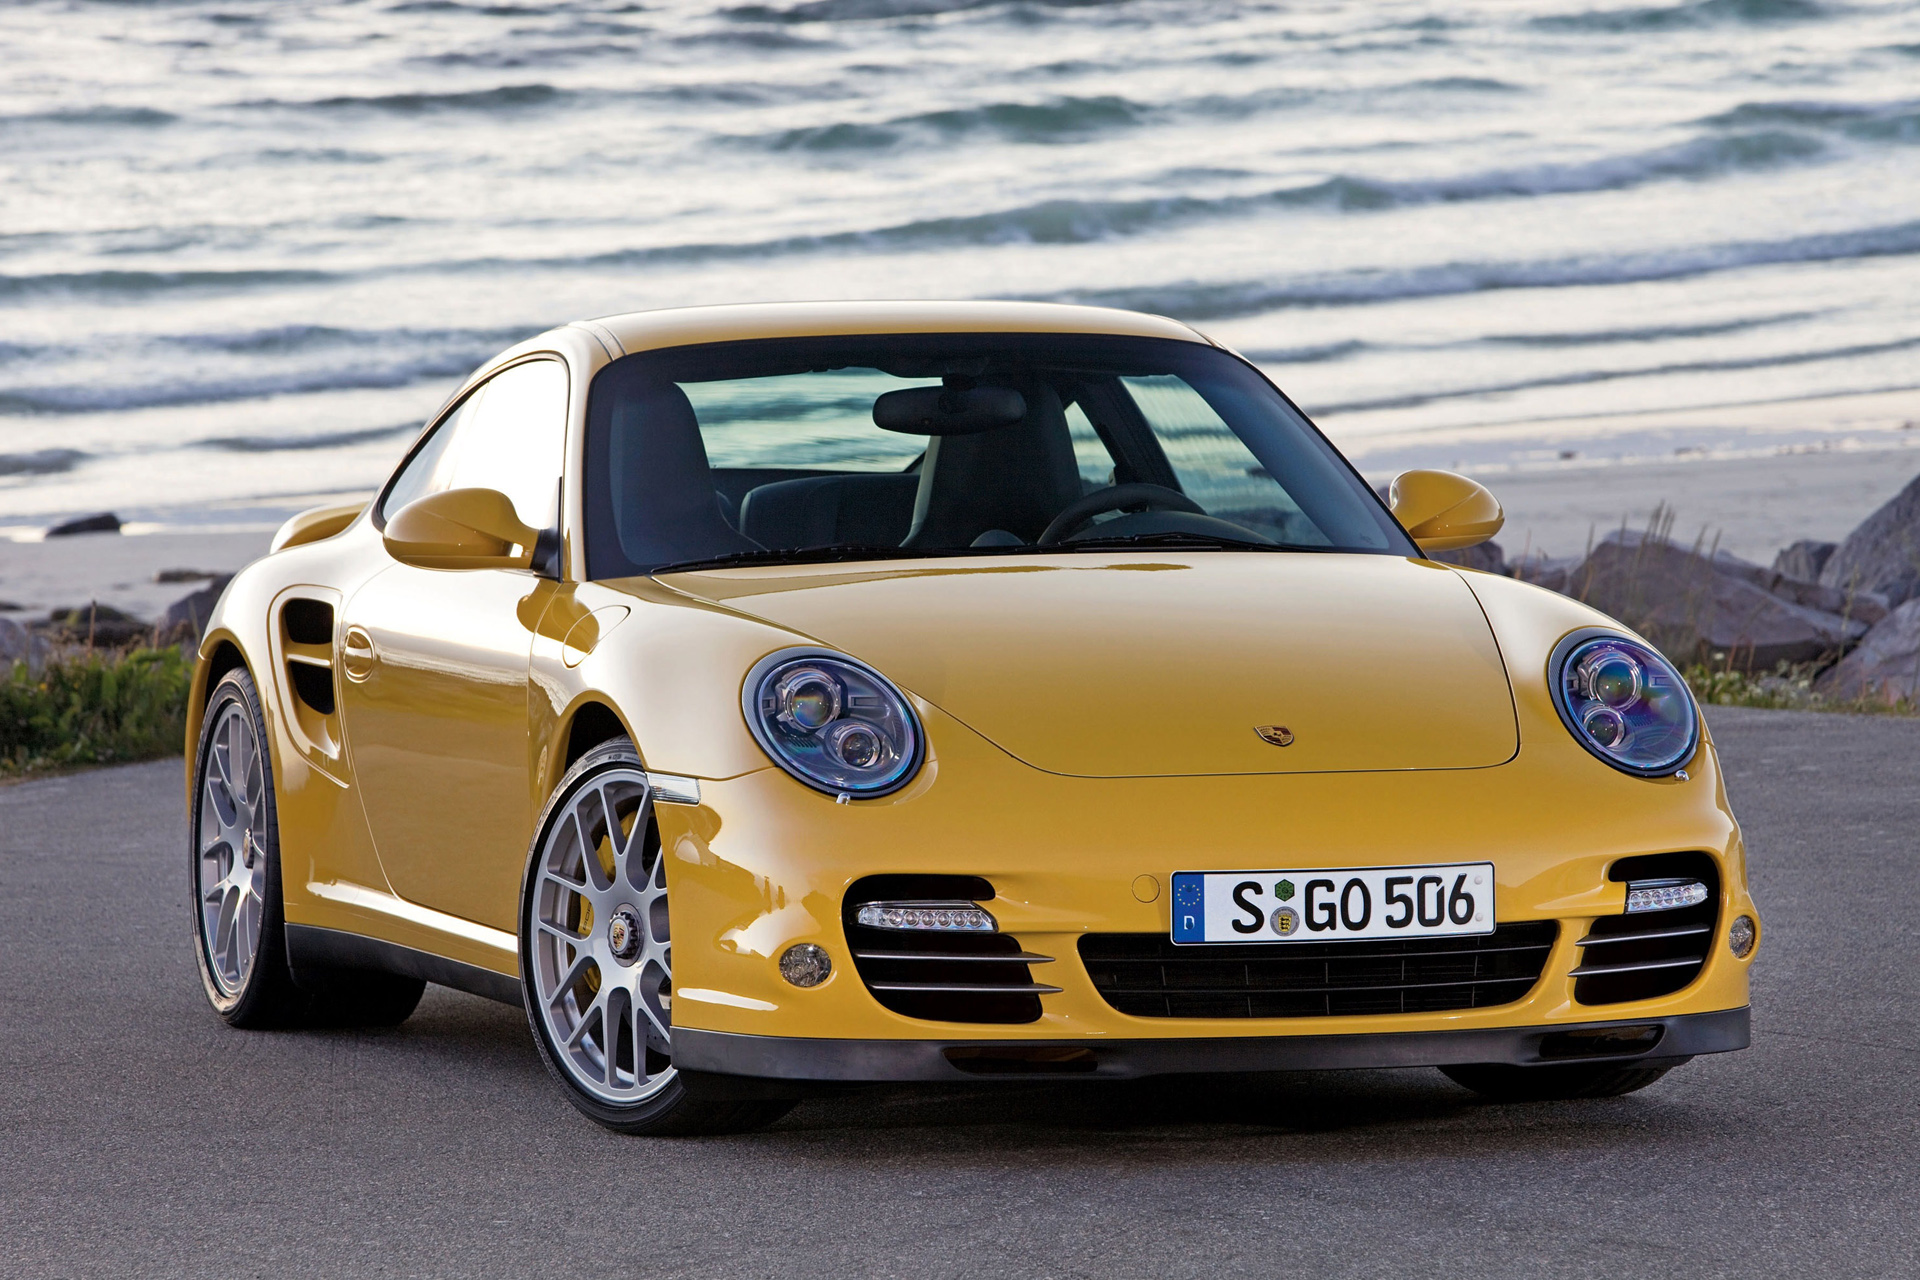 Porsche Photo Gallery 2534 High Quality Porsche Pictures HD Style Wallpapers Download free beautiful images and photos HD [prarshipsa.tk]